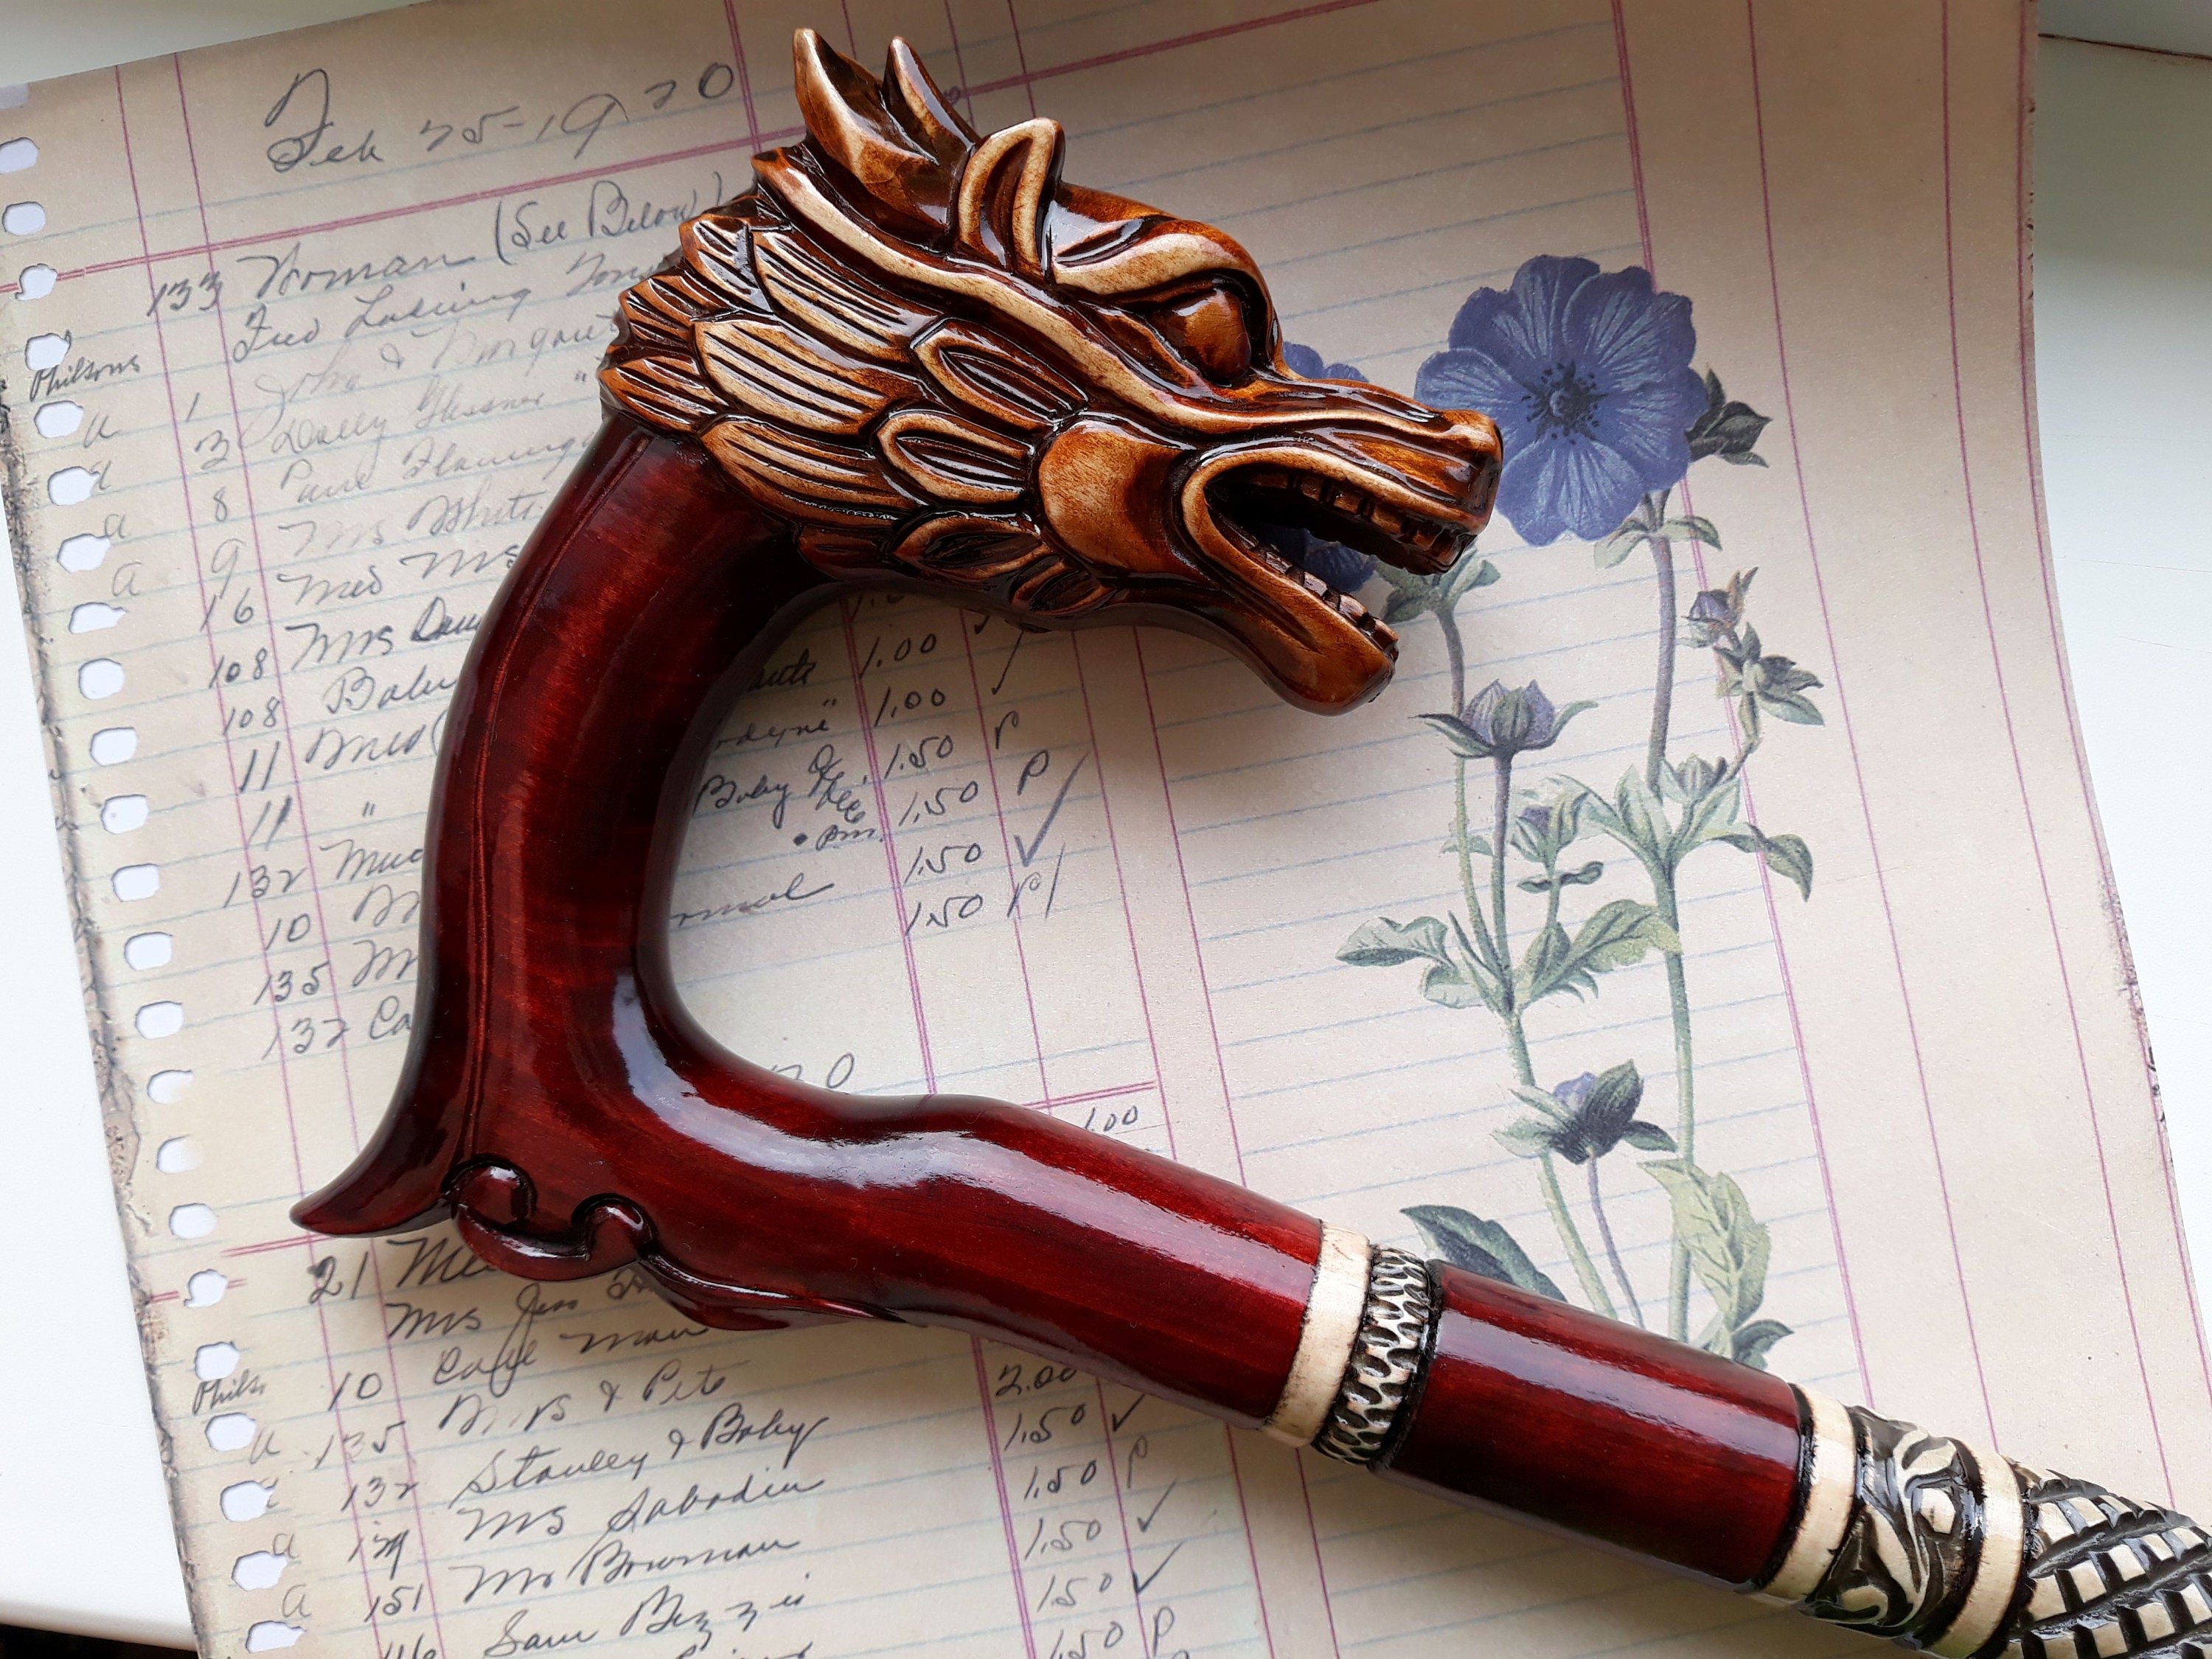 Walking Cane Dragon Wooden Canes For Men Hand Carved Walking Sticks Wood Walking Canes Men Custom Walking Cane Canes And Walking Sticks